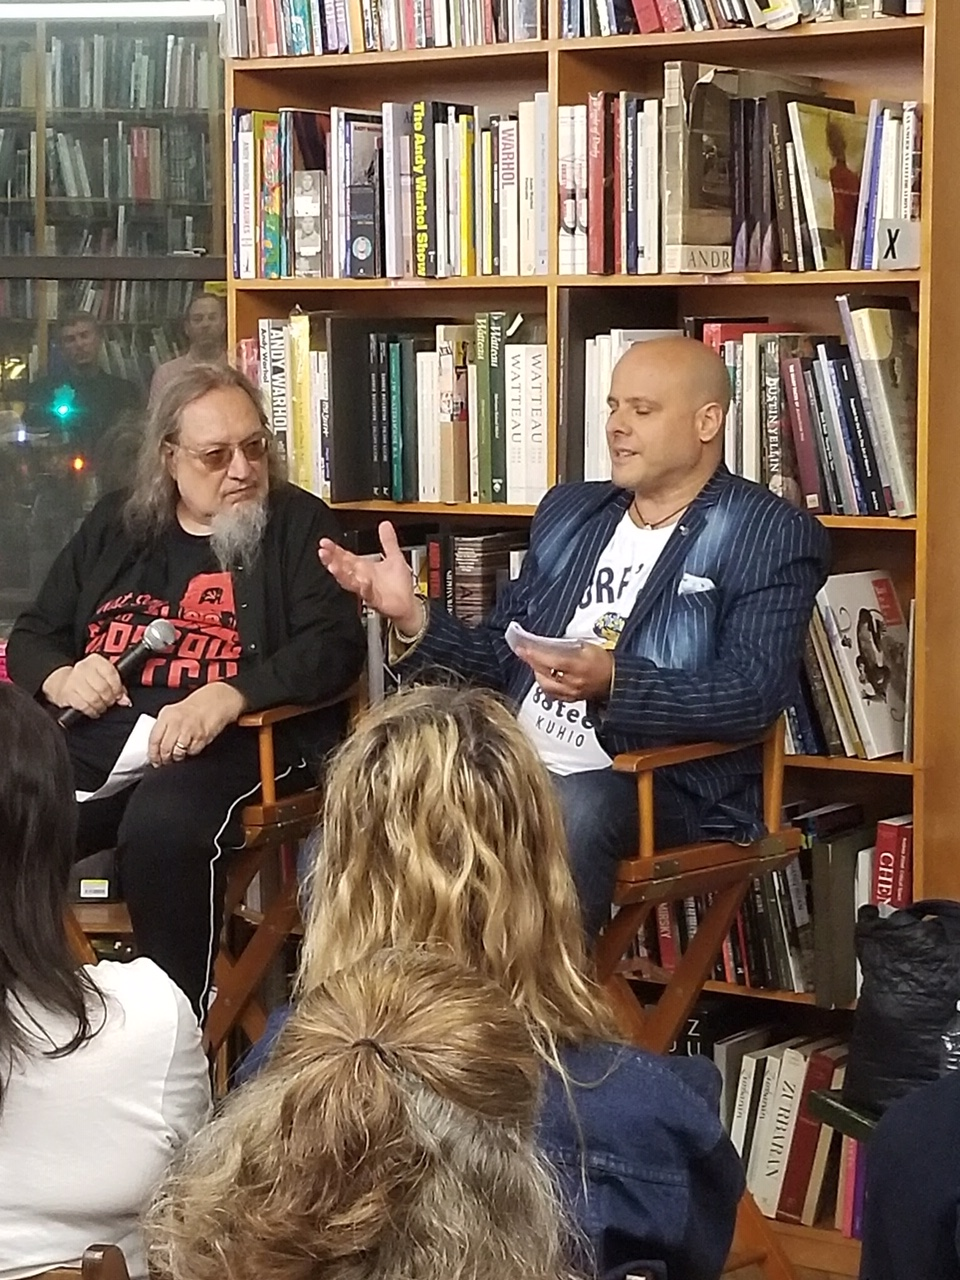 Gary-Lippman-Strand-Bookstore-Reading-25-Oct-2019-18